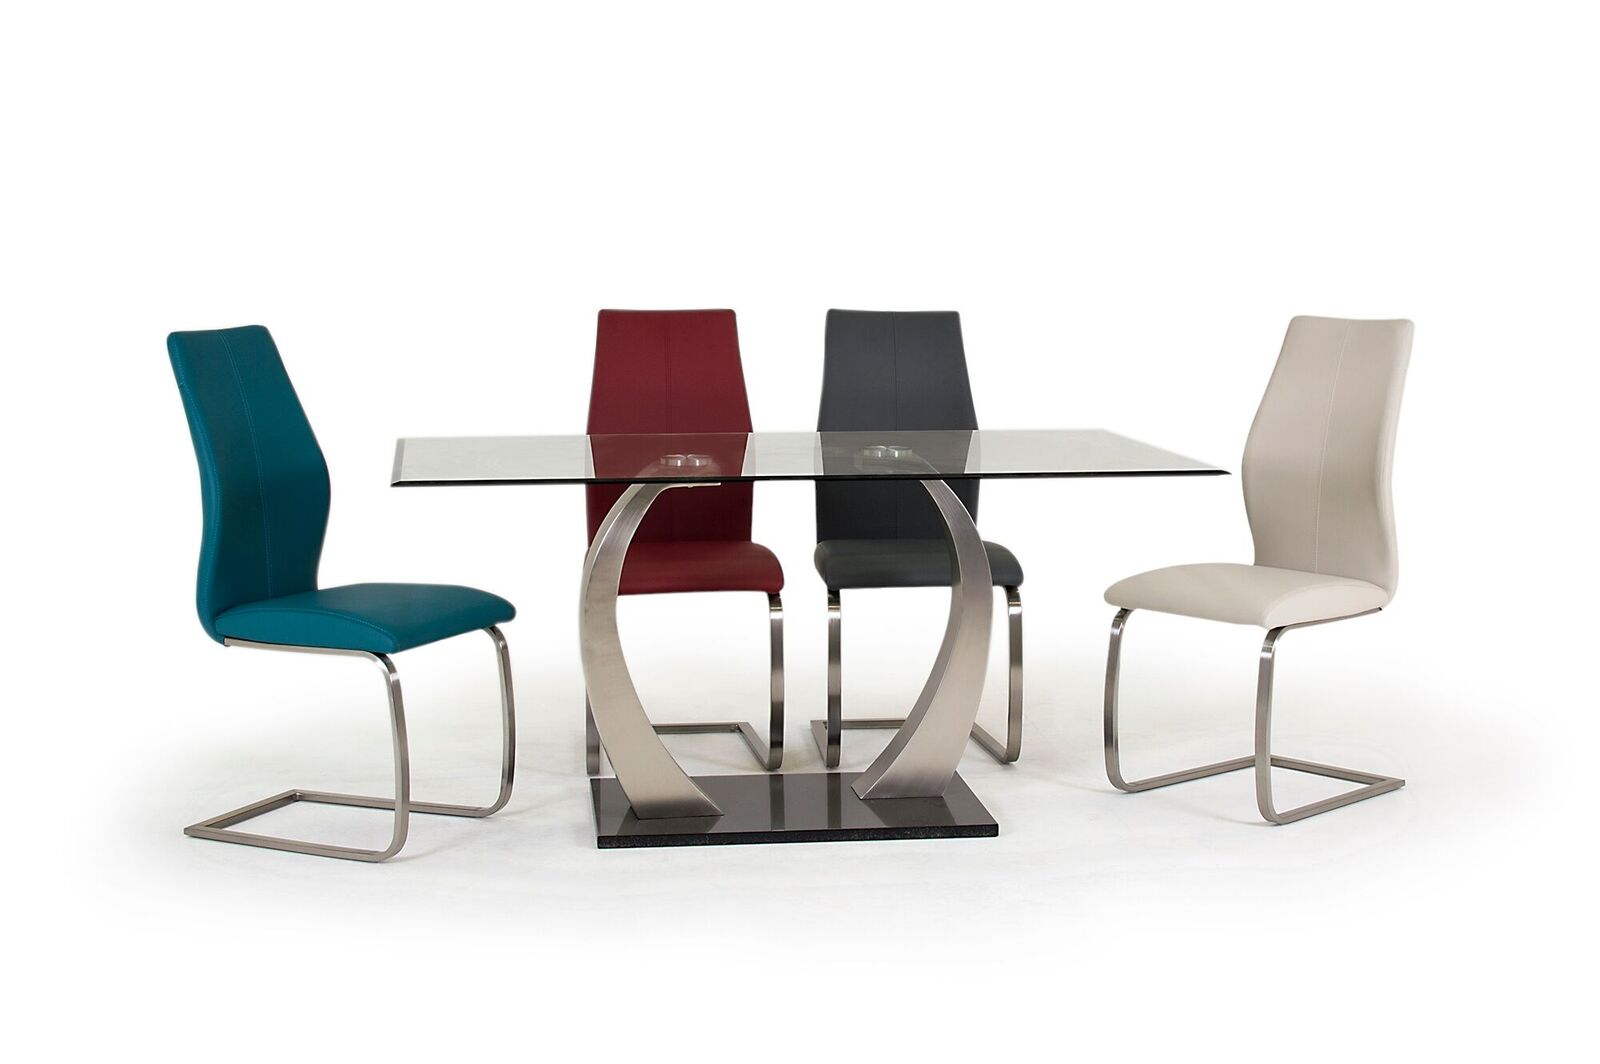 Irma Multi Coloured Chairs Black Faux Leather Dining  : Irma Chairs from www.fads.co.uk size 1600 x 1064 jpeg 79kB